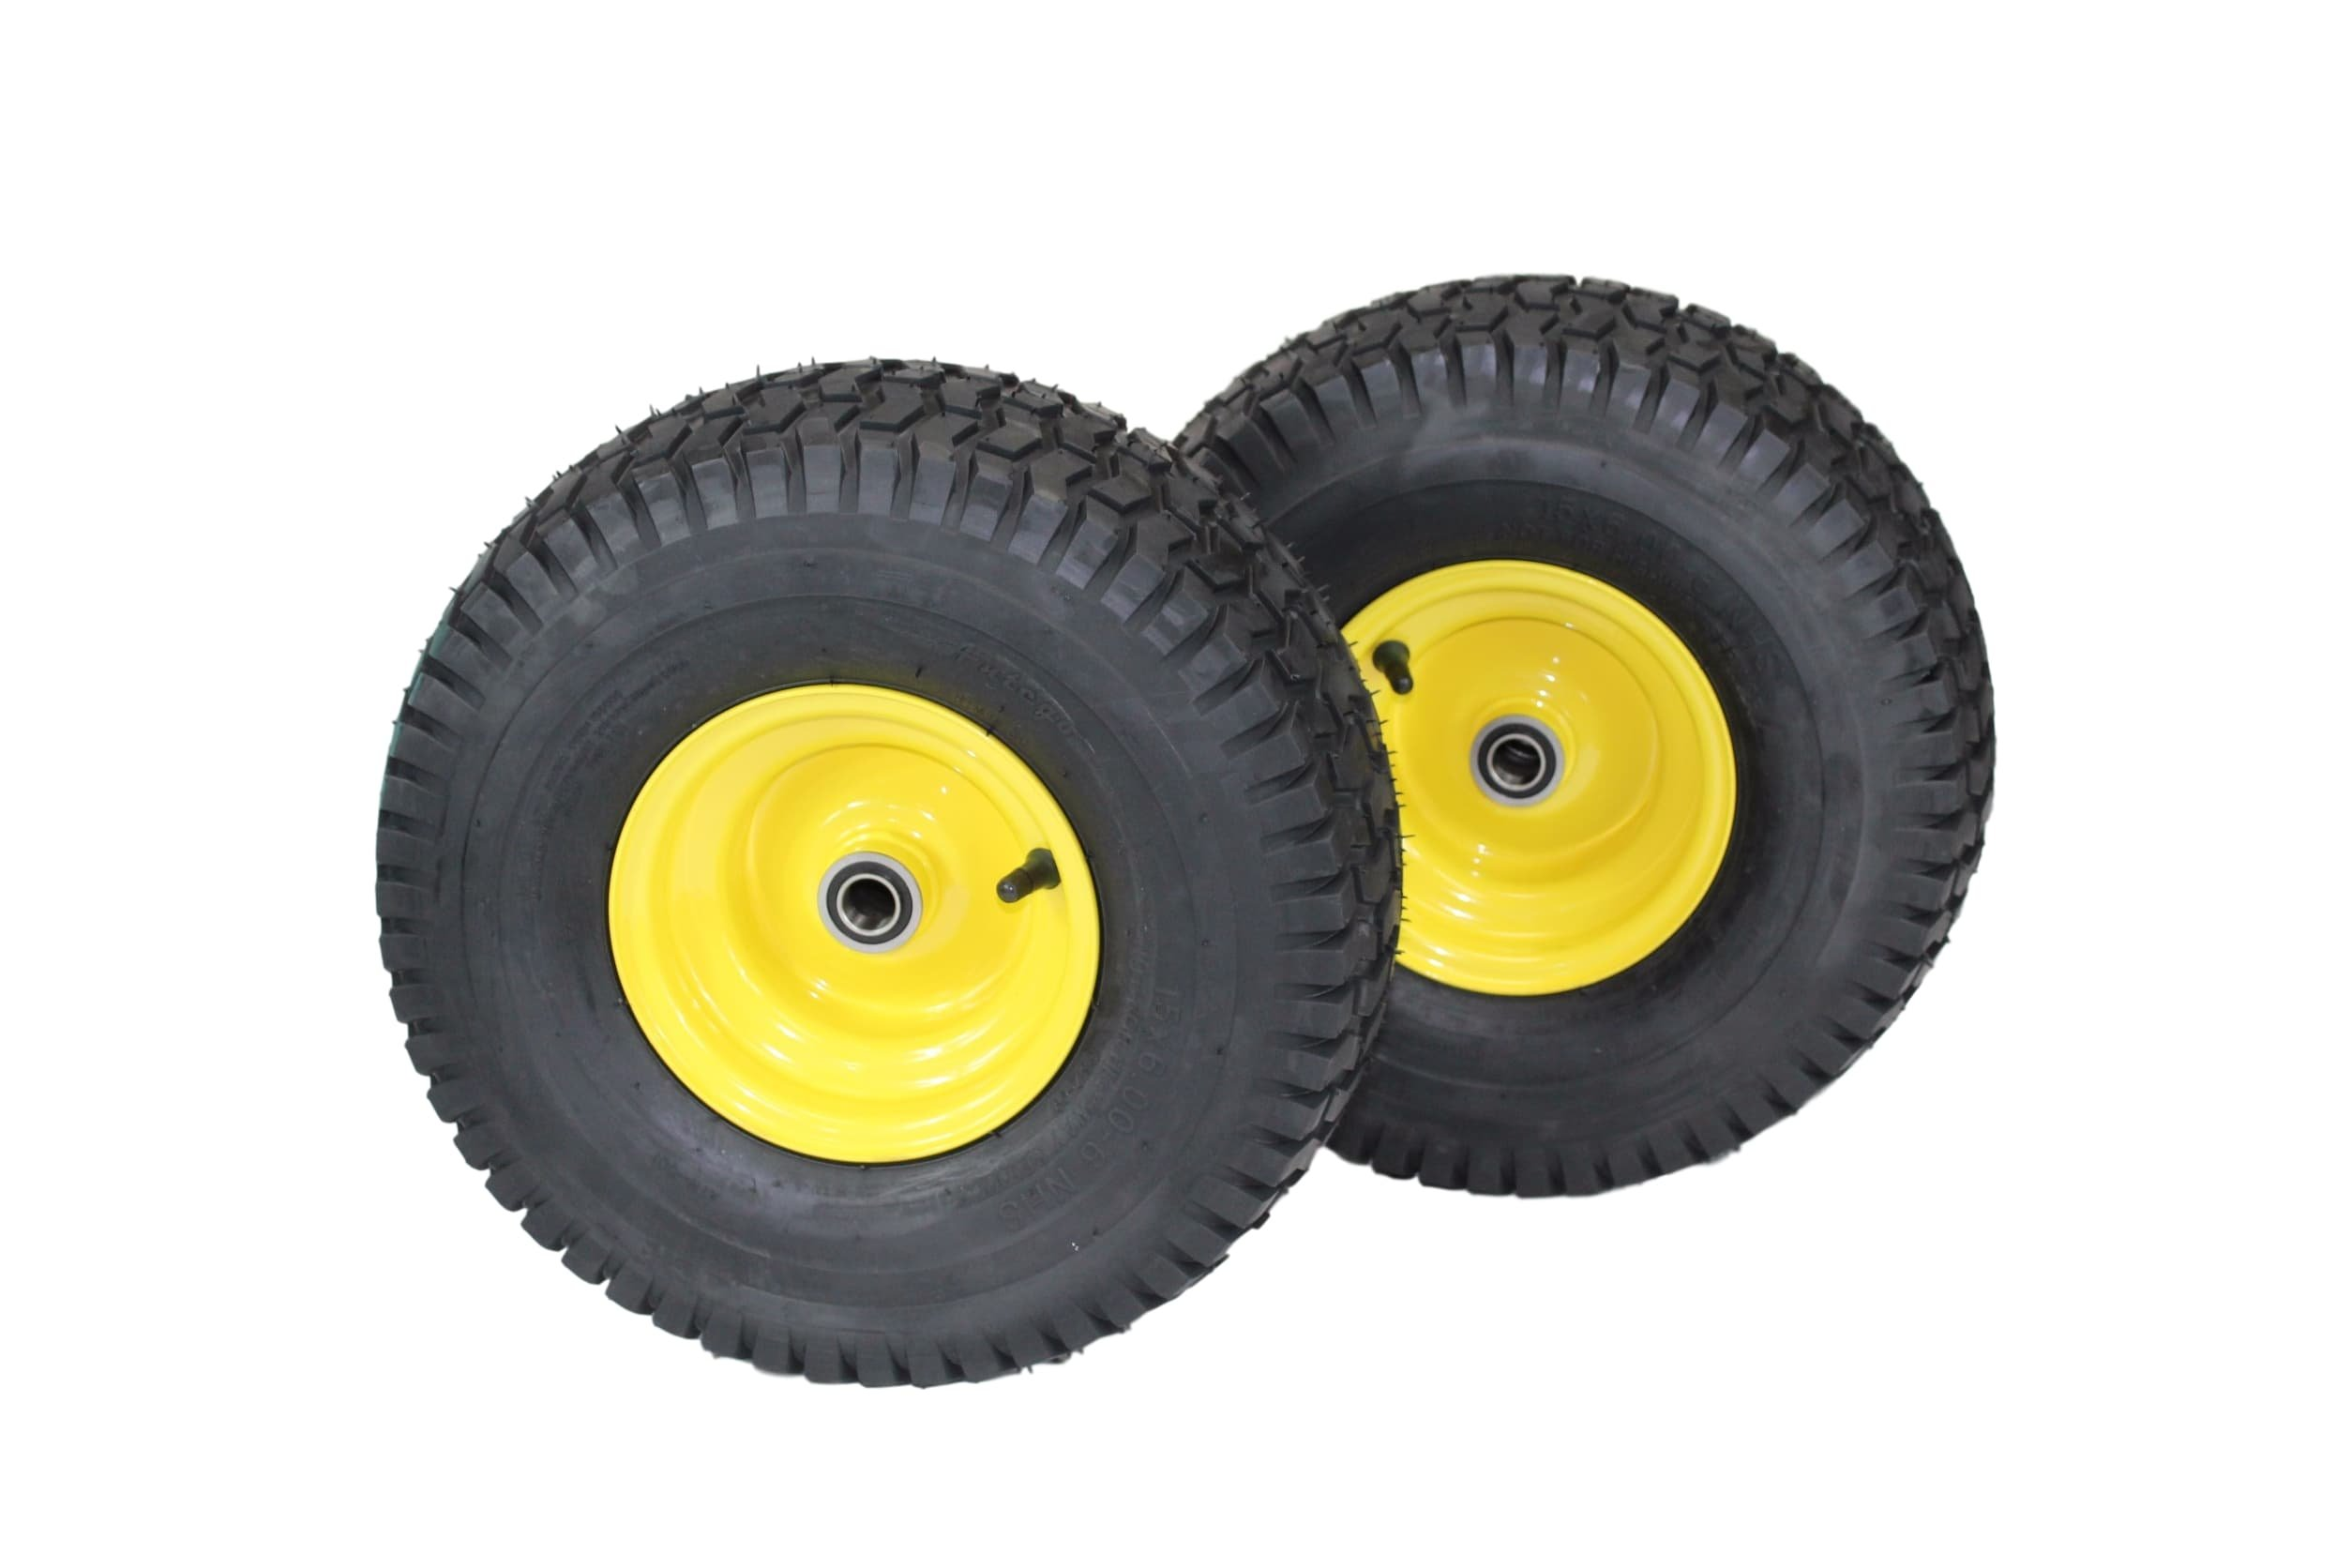 (Set of 2) 15x6.00-6 Tires & Wheels 4 Ply for Lawn & Garden Mower Turf Tires .75'' Bearing